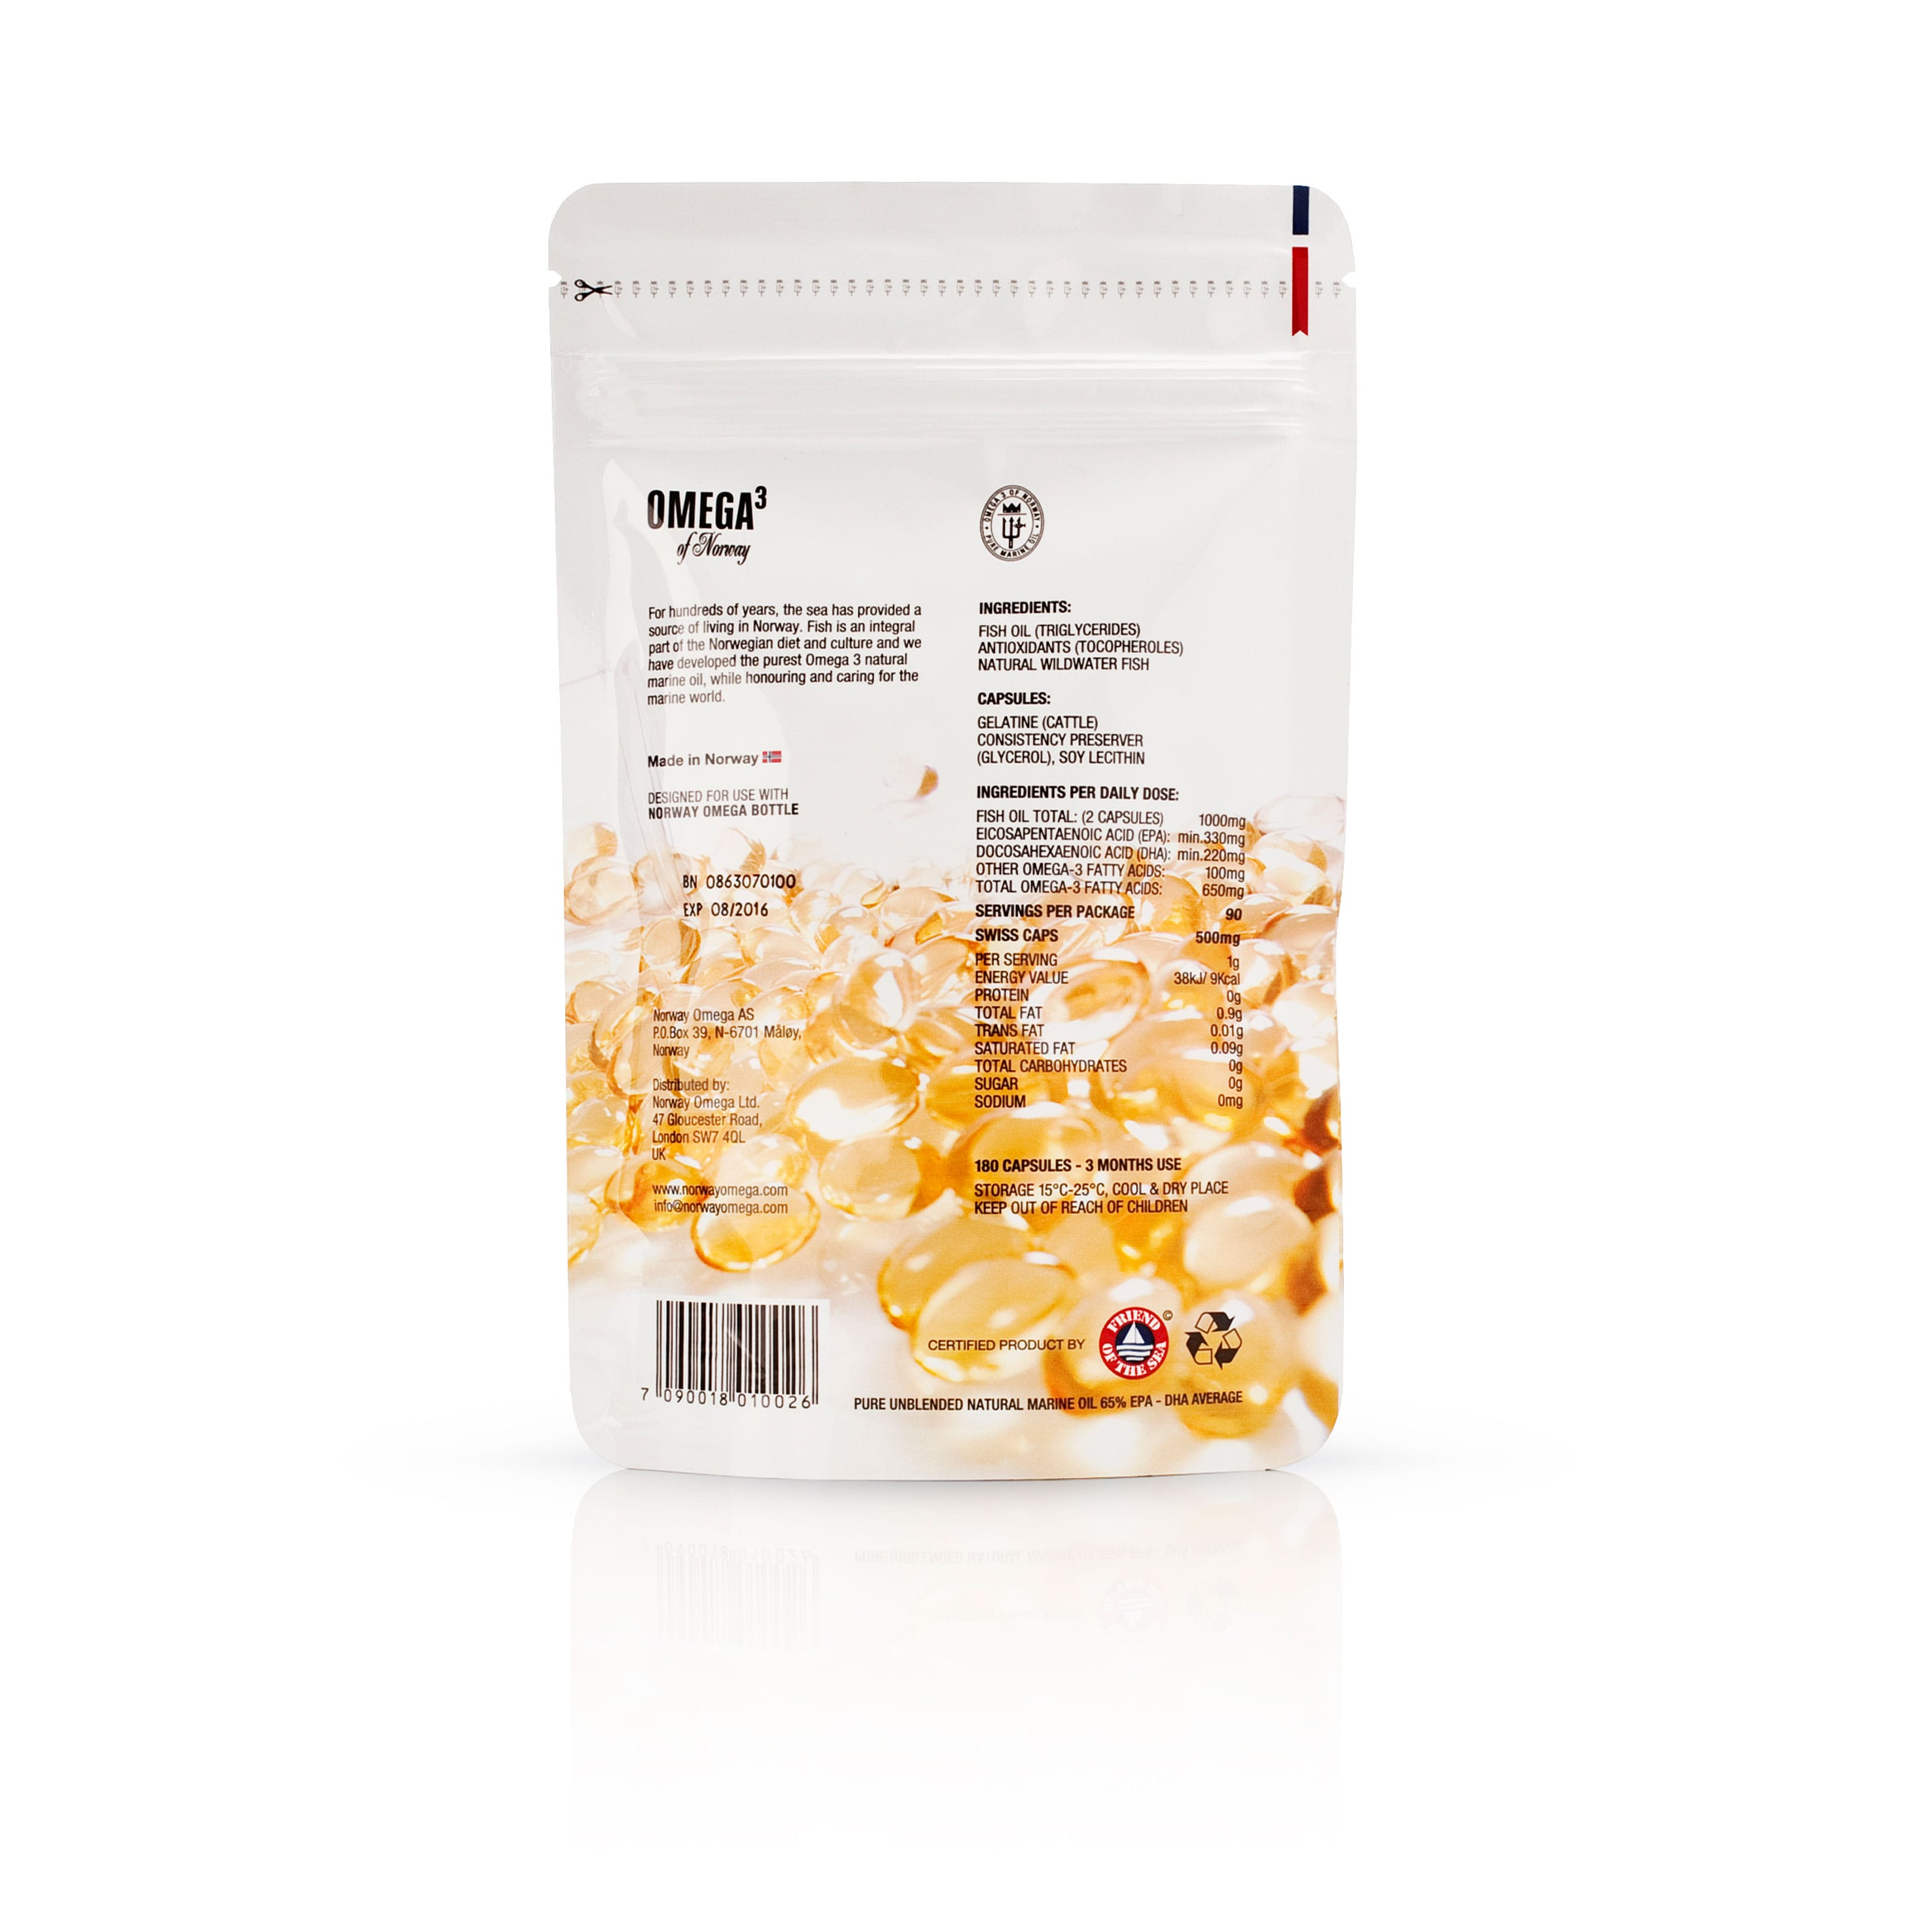 Omega 3 Travel Pouch - 60 Capsules - Back